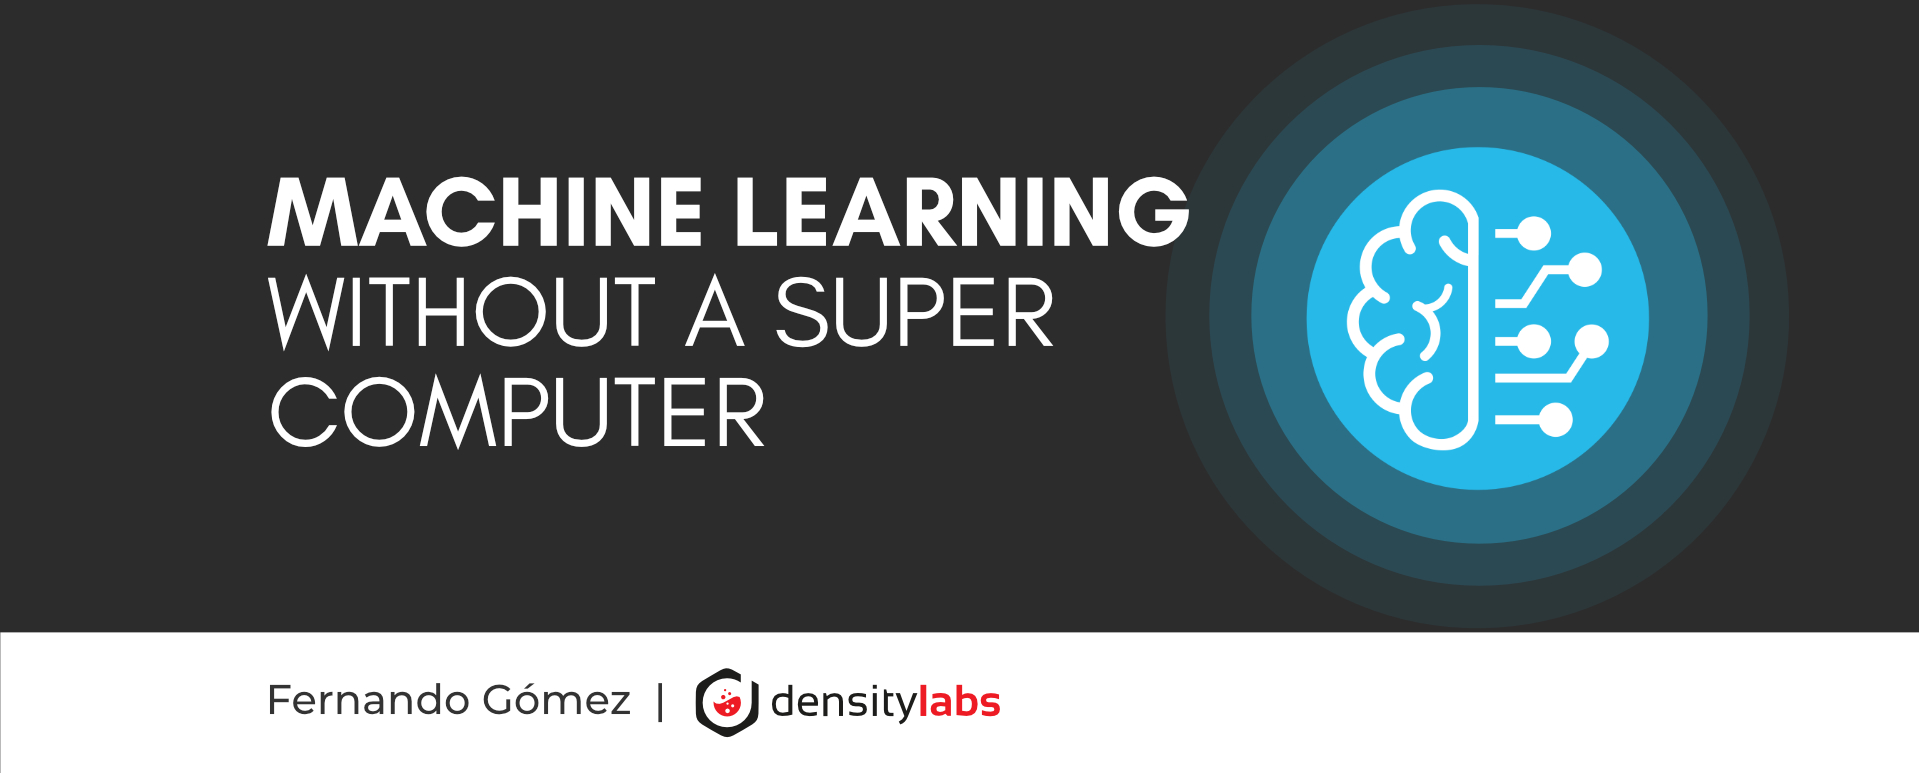 Machine Learning without a super computer